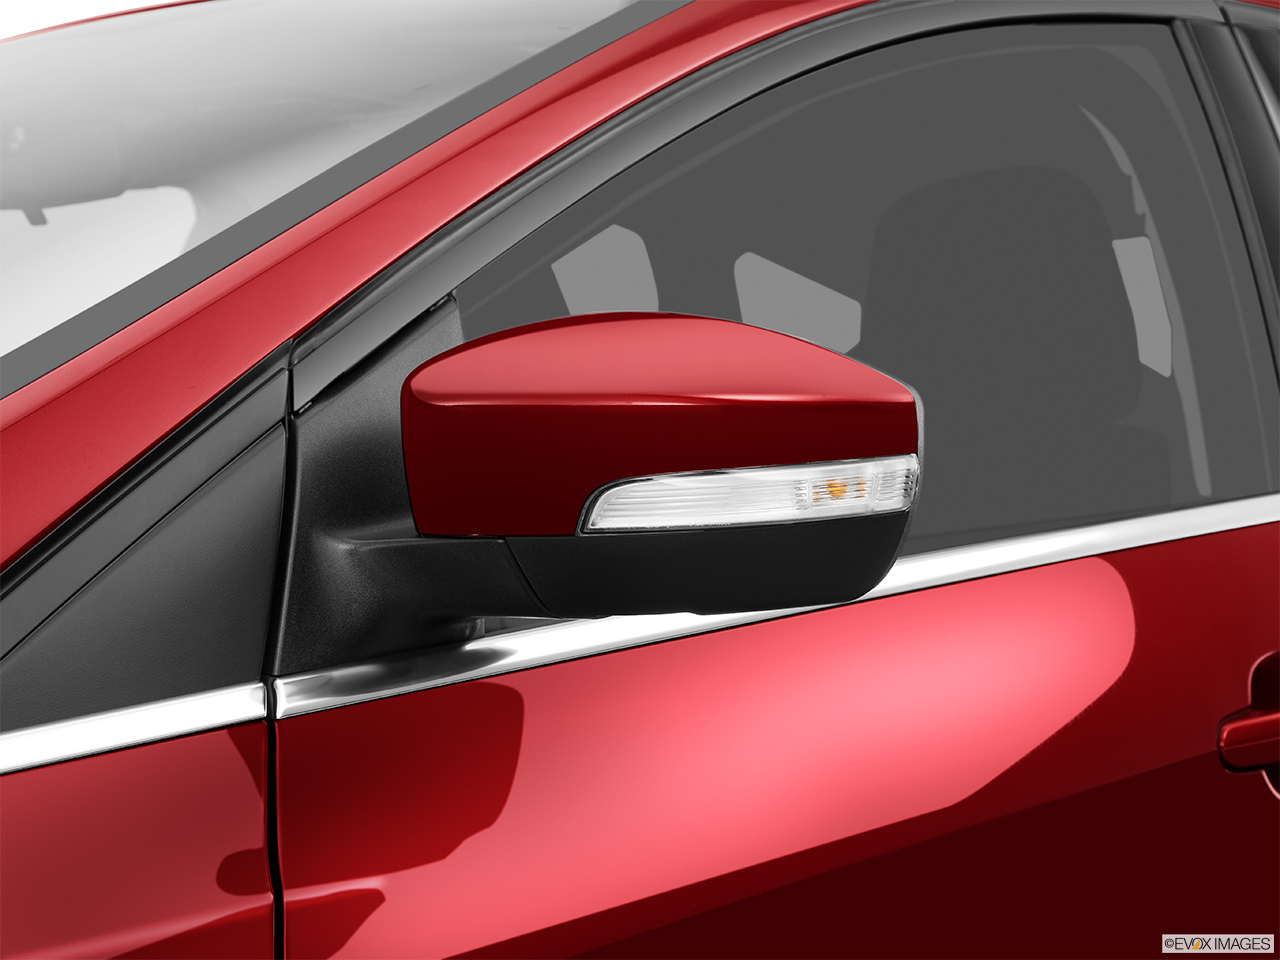 2015 Ford Focus 5dr Hatchback Titanium Front Angle View 2015